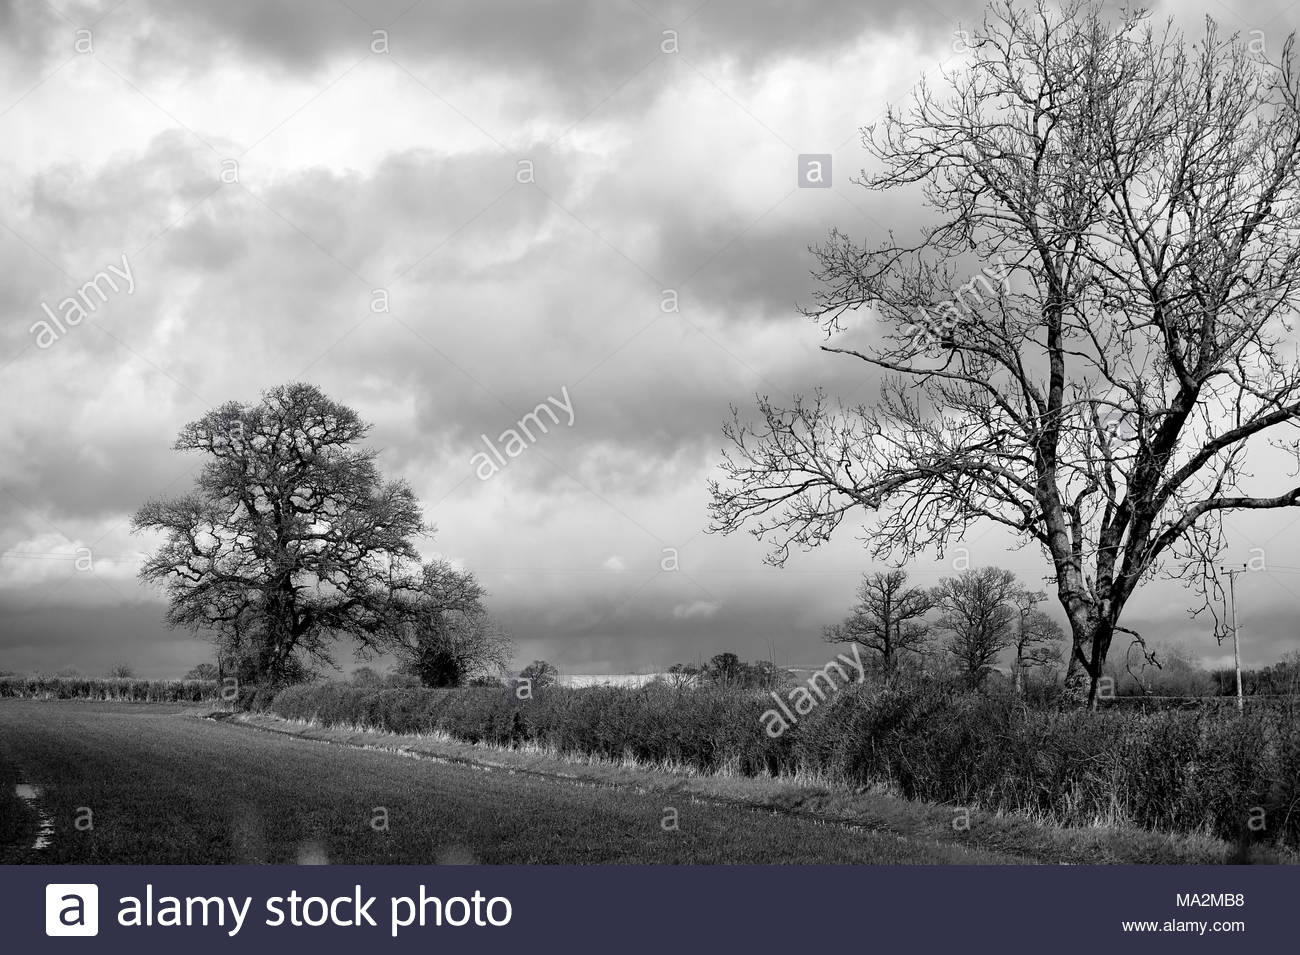 Stormy skies in the county of Wiltshire in the UK - Stock Image